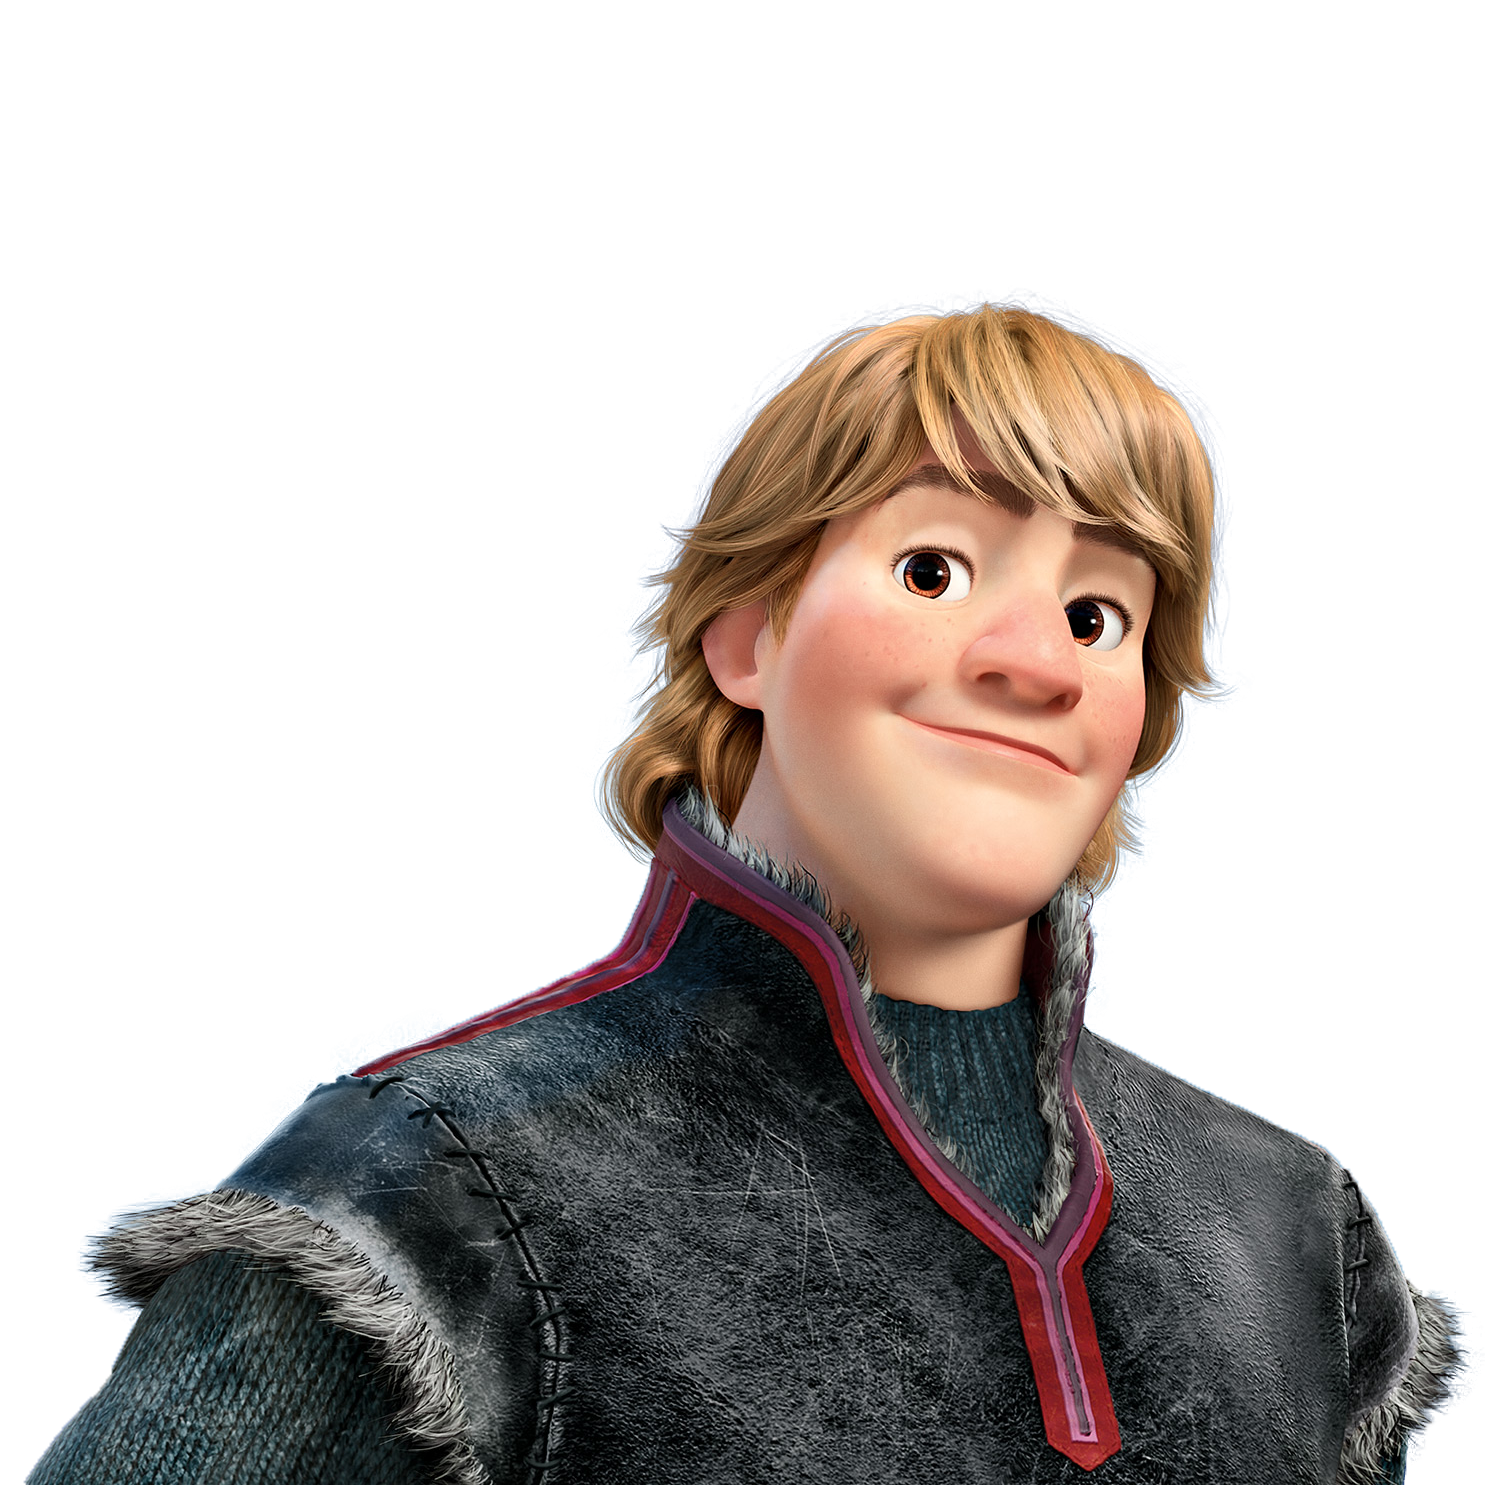 kristoff frozen photo - photo #2